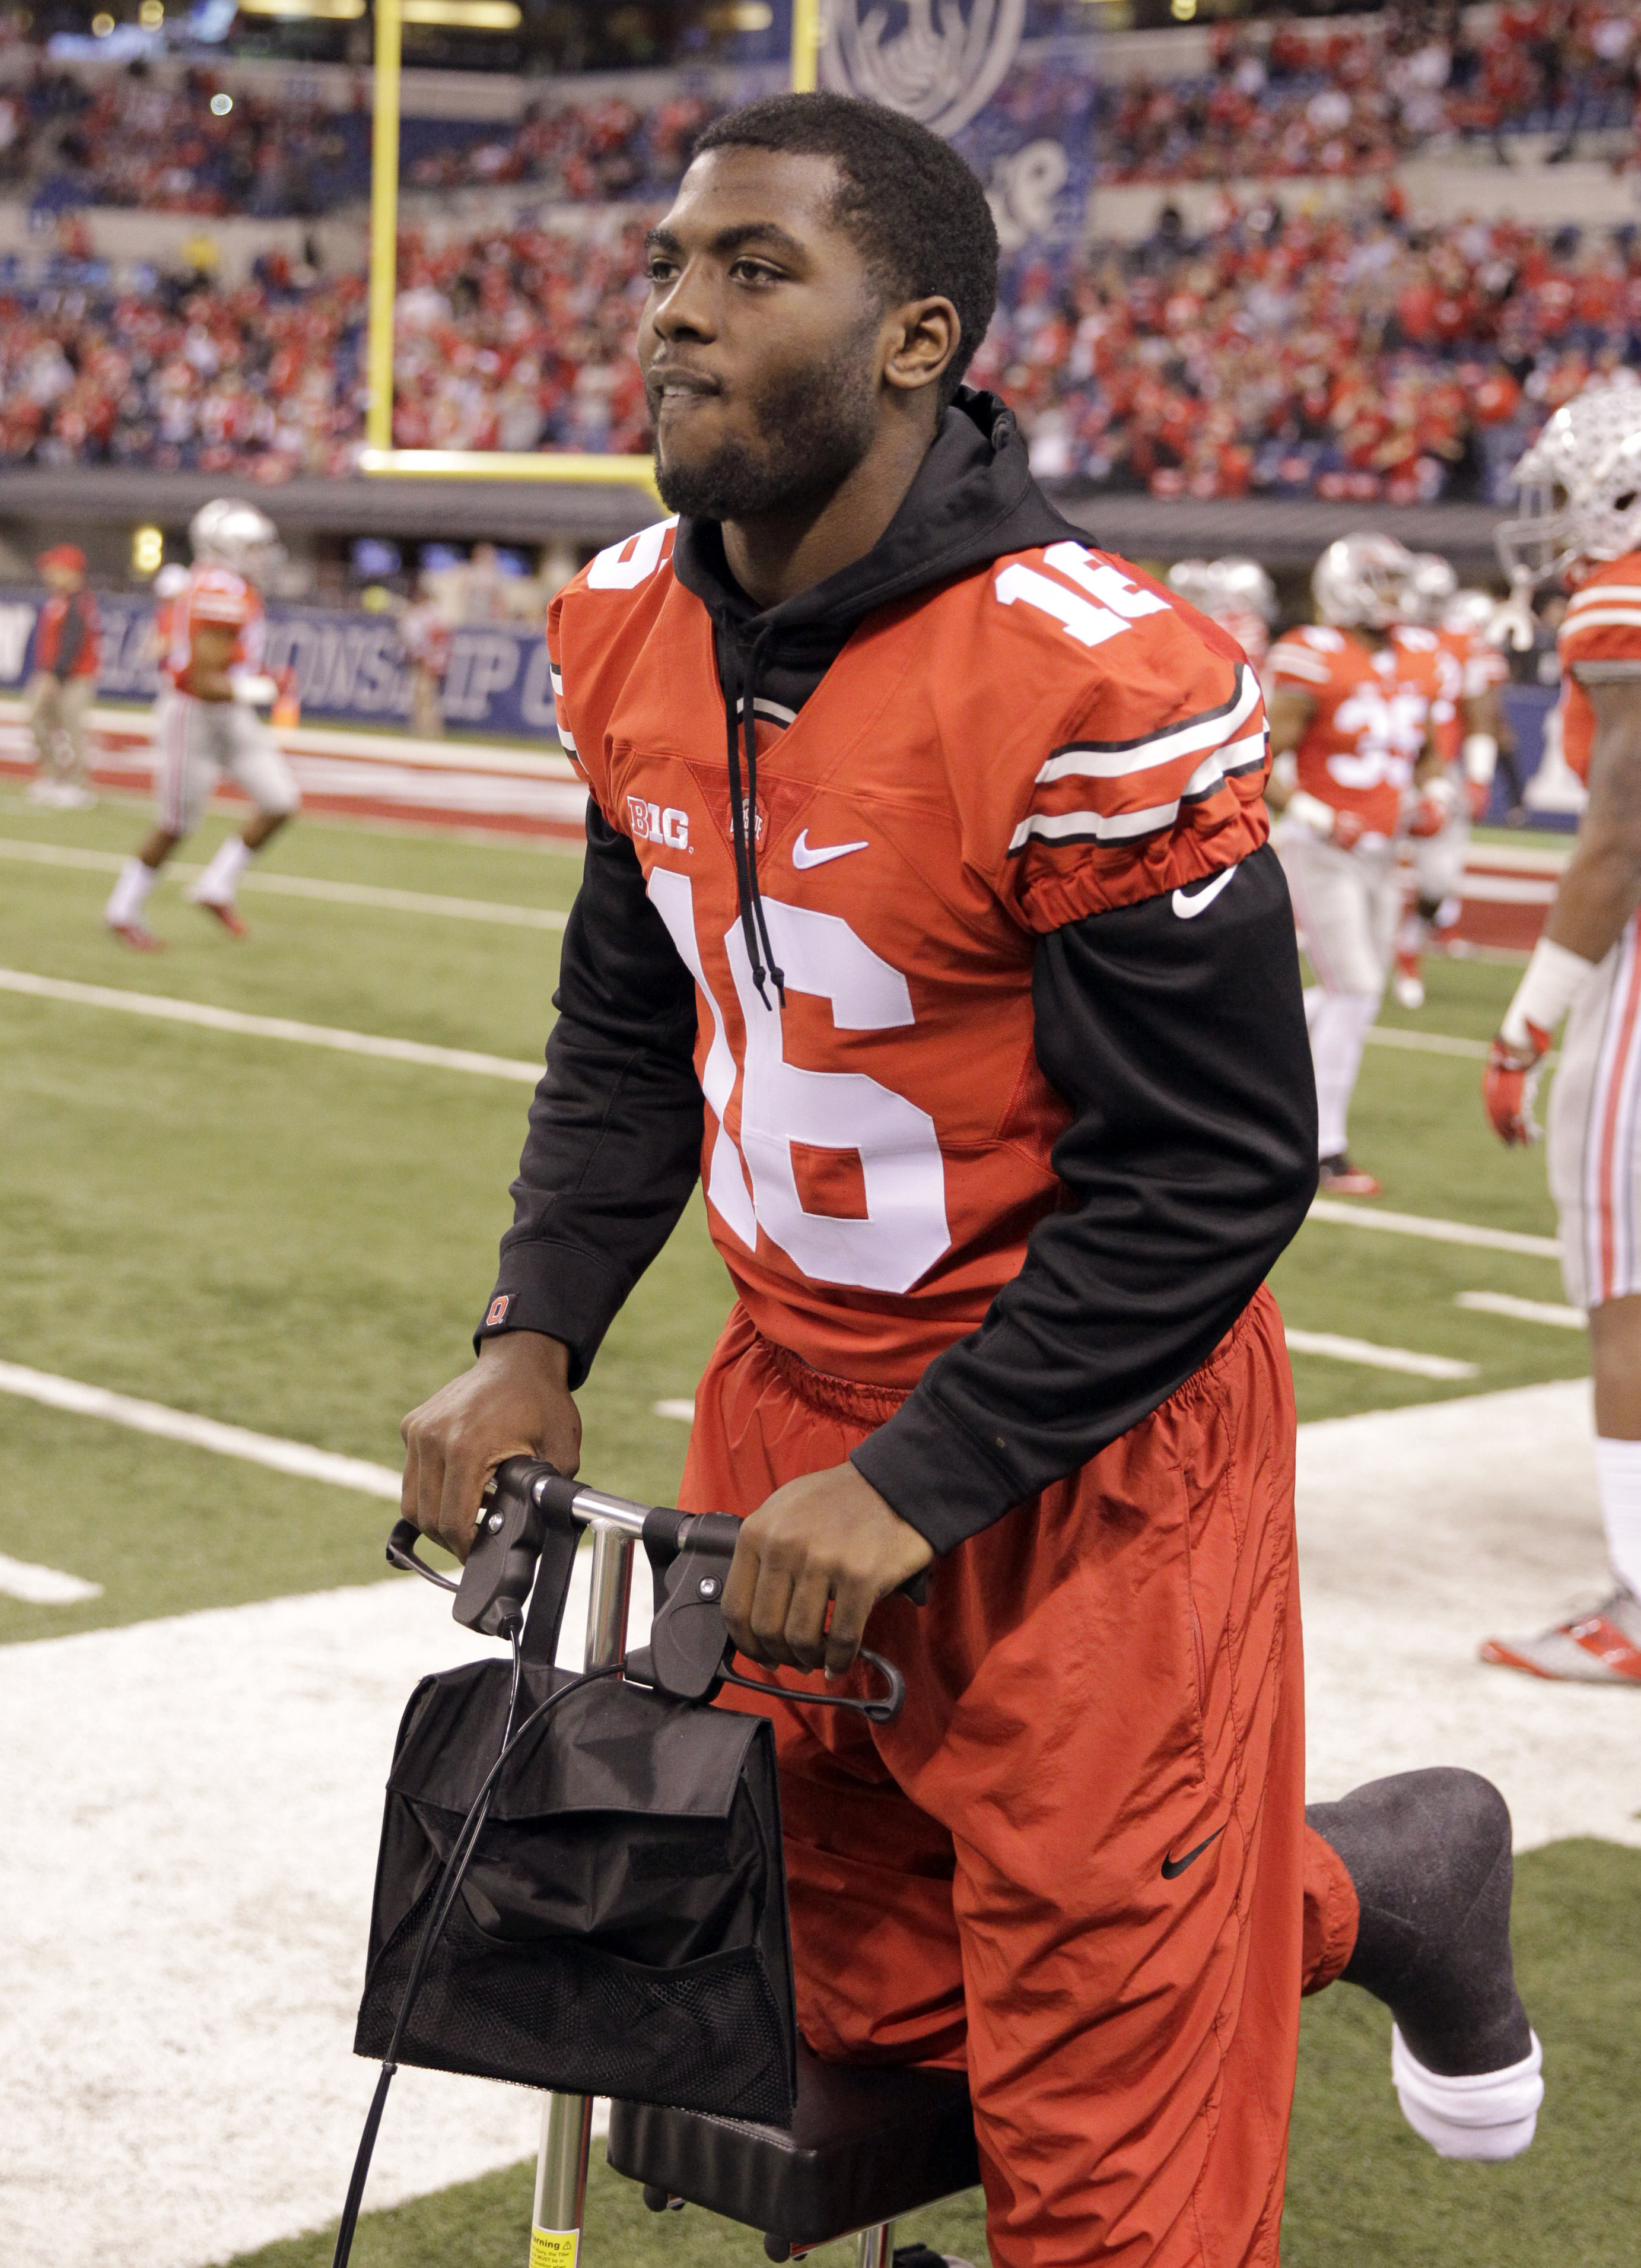 FILE - In a Saturday, Dec. 6, 2014 file photo, injured Ohio State quarterback J.T. Barrett is seen on the sidelines before the start of the Big Ten Conference championship NCAA college football game between Ohio State and Wisconsin, in Indianapolis. In 20